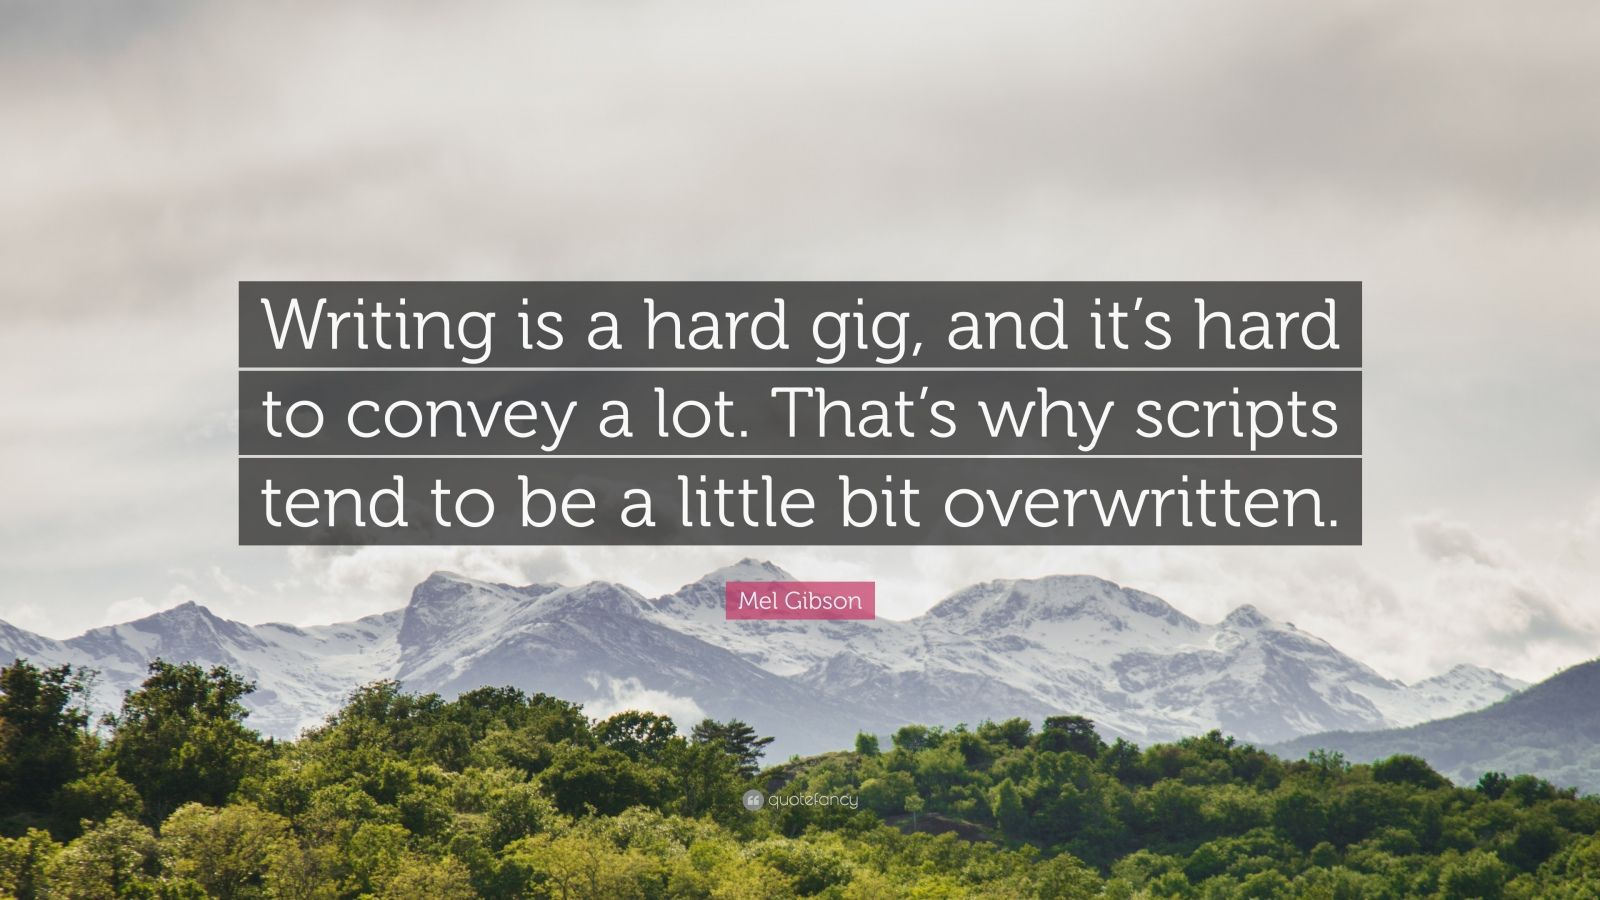 """Mel Gibson Quote: """"Writing is a hard gig, and it's hard to convey a lot. That's why scripts tend to be a little bit overwritten."""""""